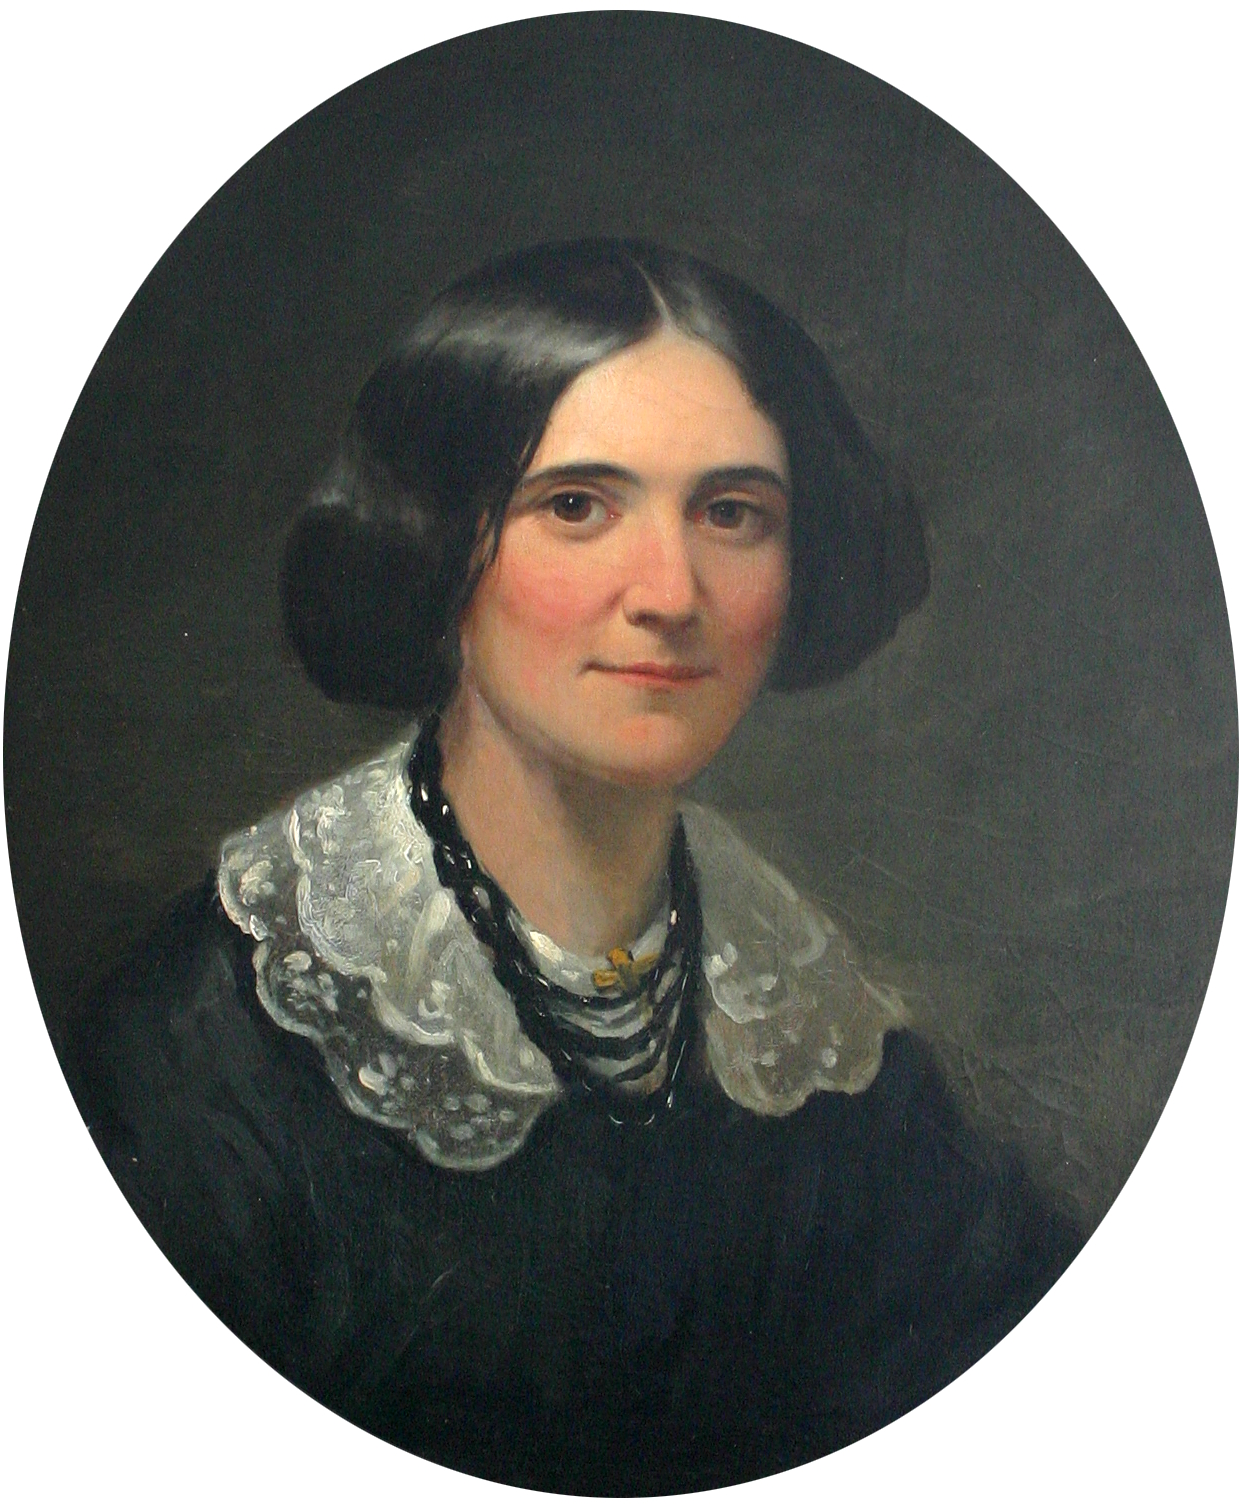 1850 portrait of Alice Cary in New York City which hangs in her childhood home in [[North College Hill, Ohio